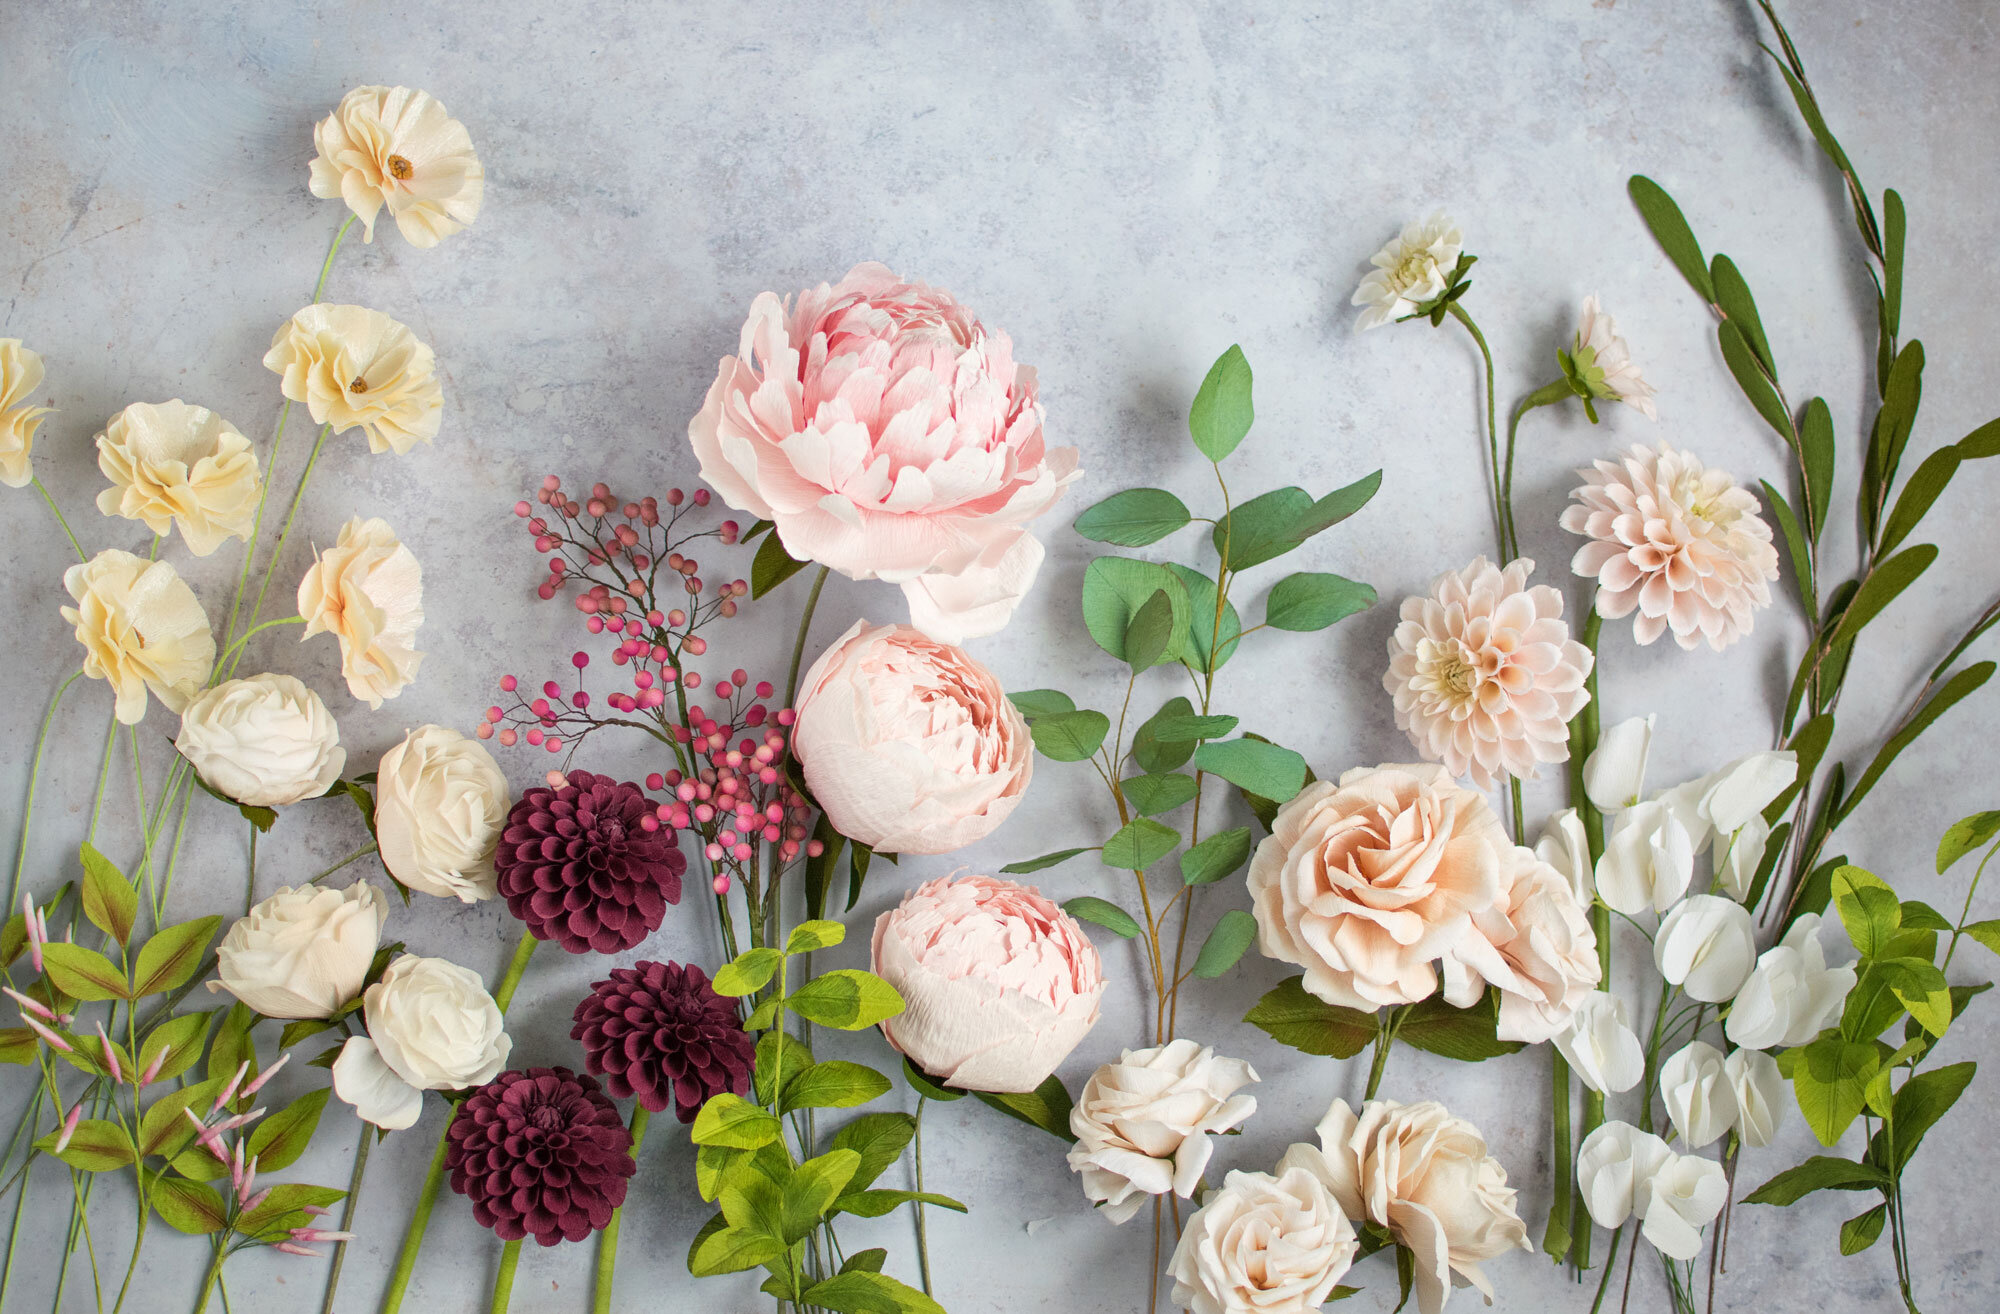 Blush-Autumn-Bouquet-by-Crafted-to-Bloom-(spread)-#paperflowers.jpg